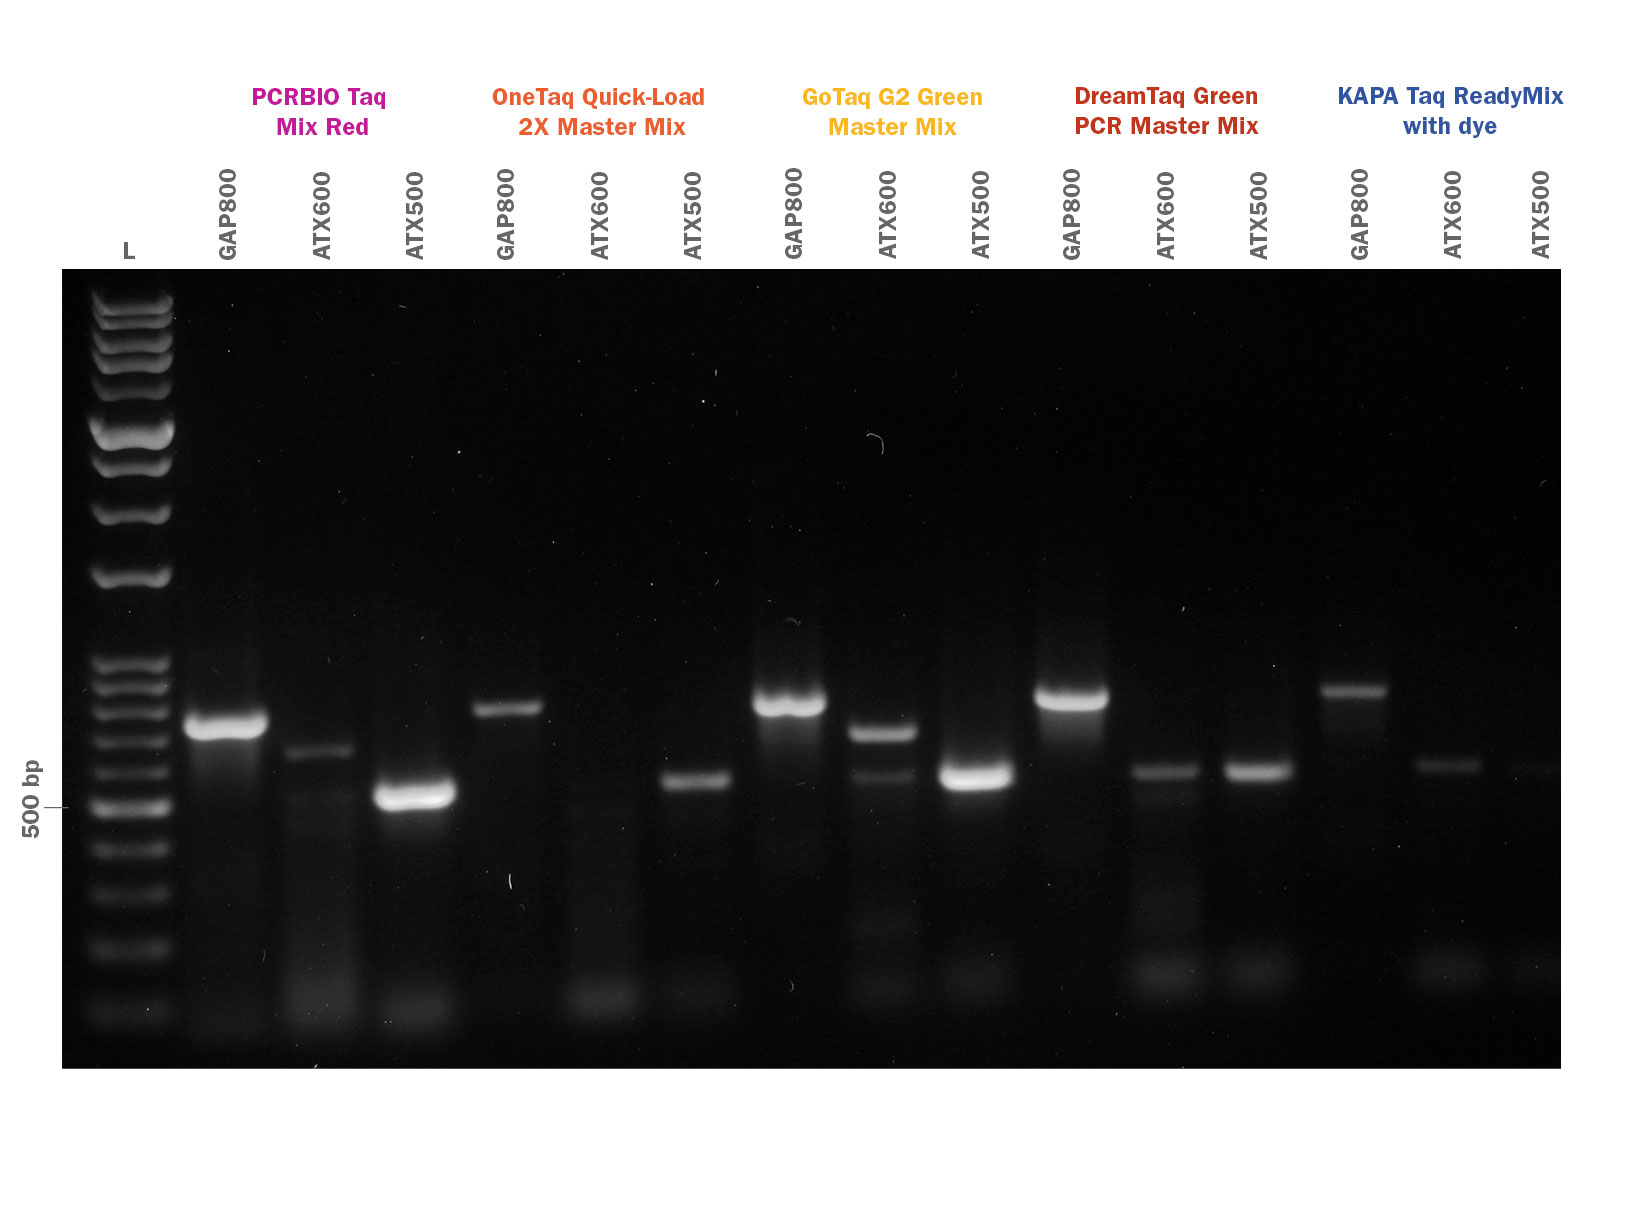 Gel image showing PCRBIO Taq Mix Red competitor comparison of GC rich amplification